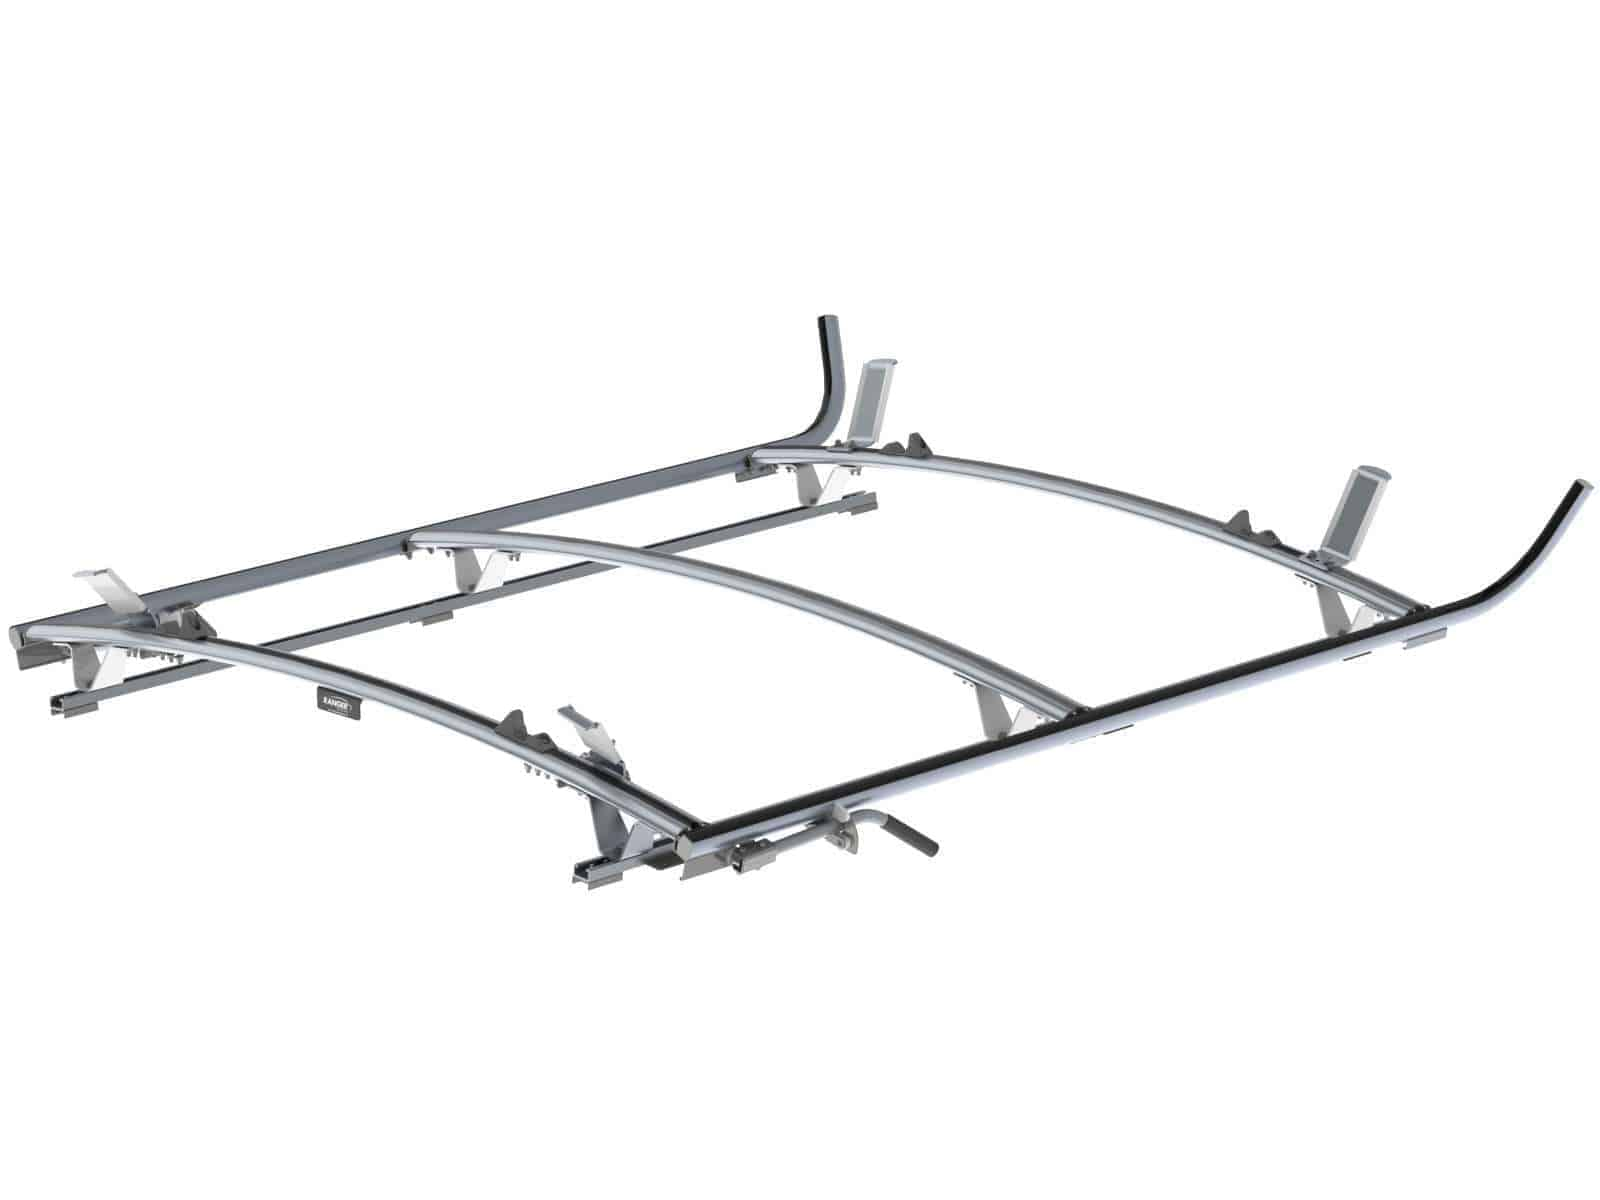 Double Side Ram ProMaster Ladder Rack, 3 Bar System